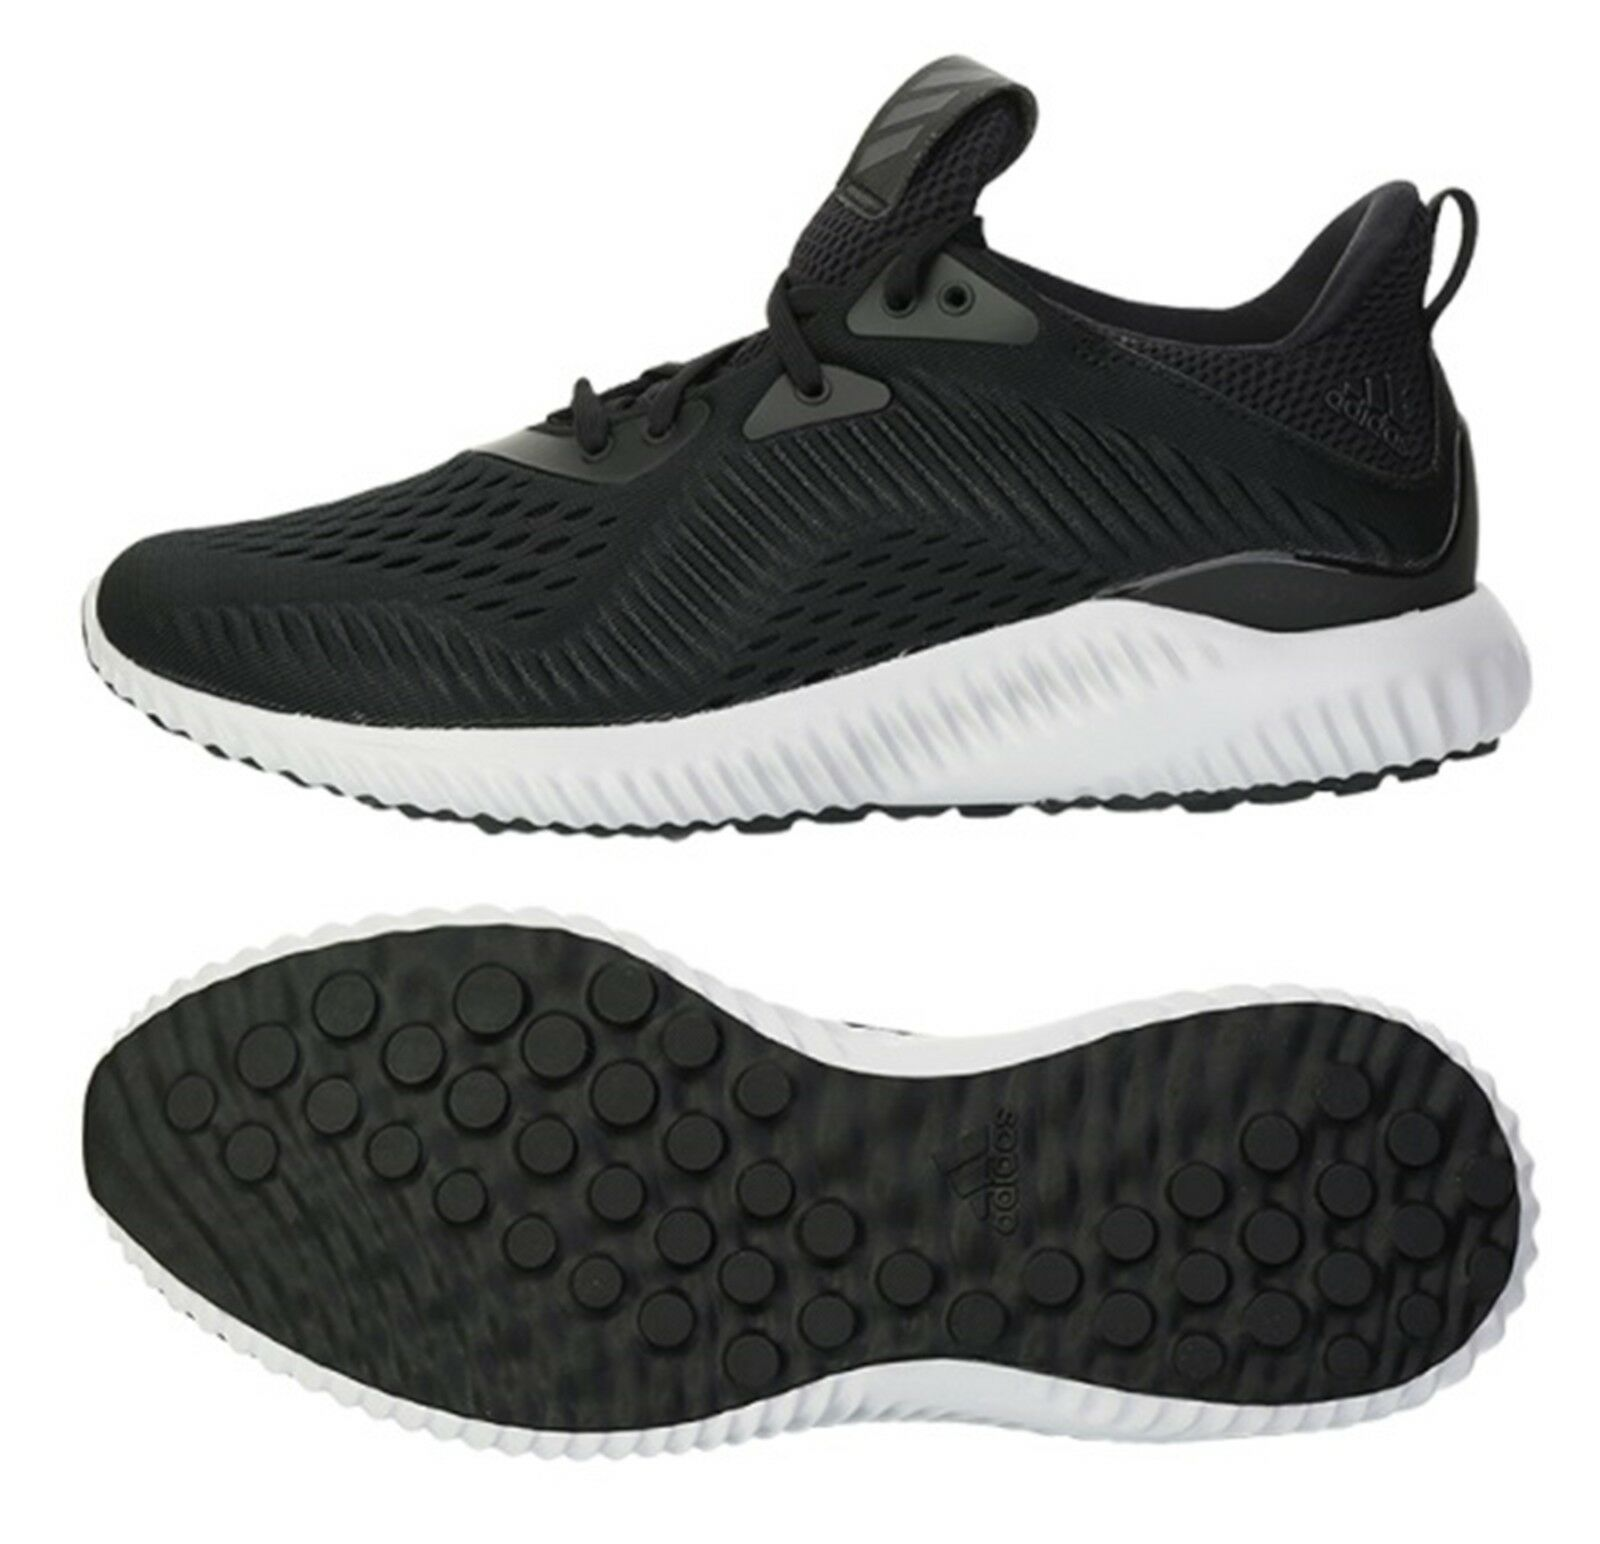 Adidas Hommes Alpha Bounce EM Chaussures d entraînement Running Black GYM Sneakers Chaussure BY4264